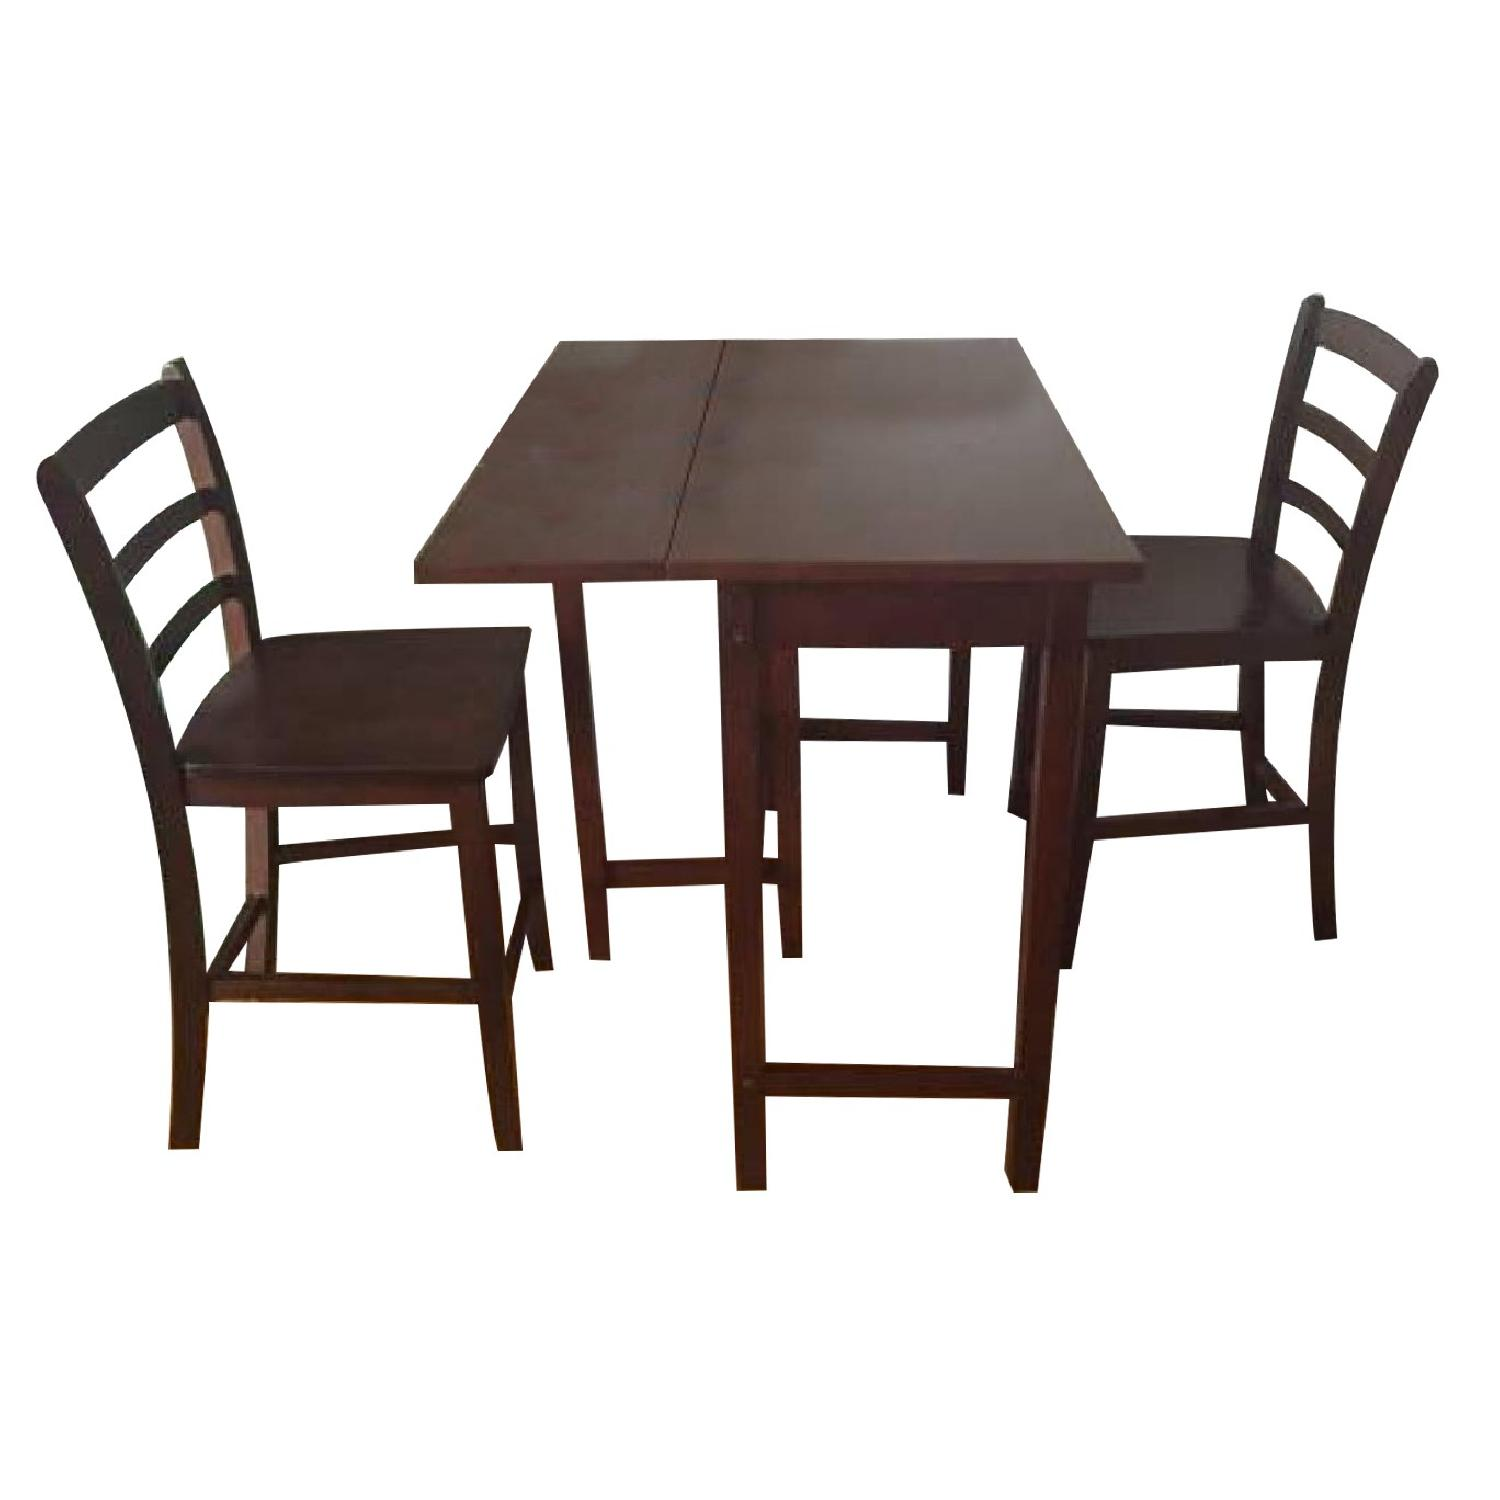 Dark Wood Extendable Table w/ 2 Chairs - image-0